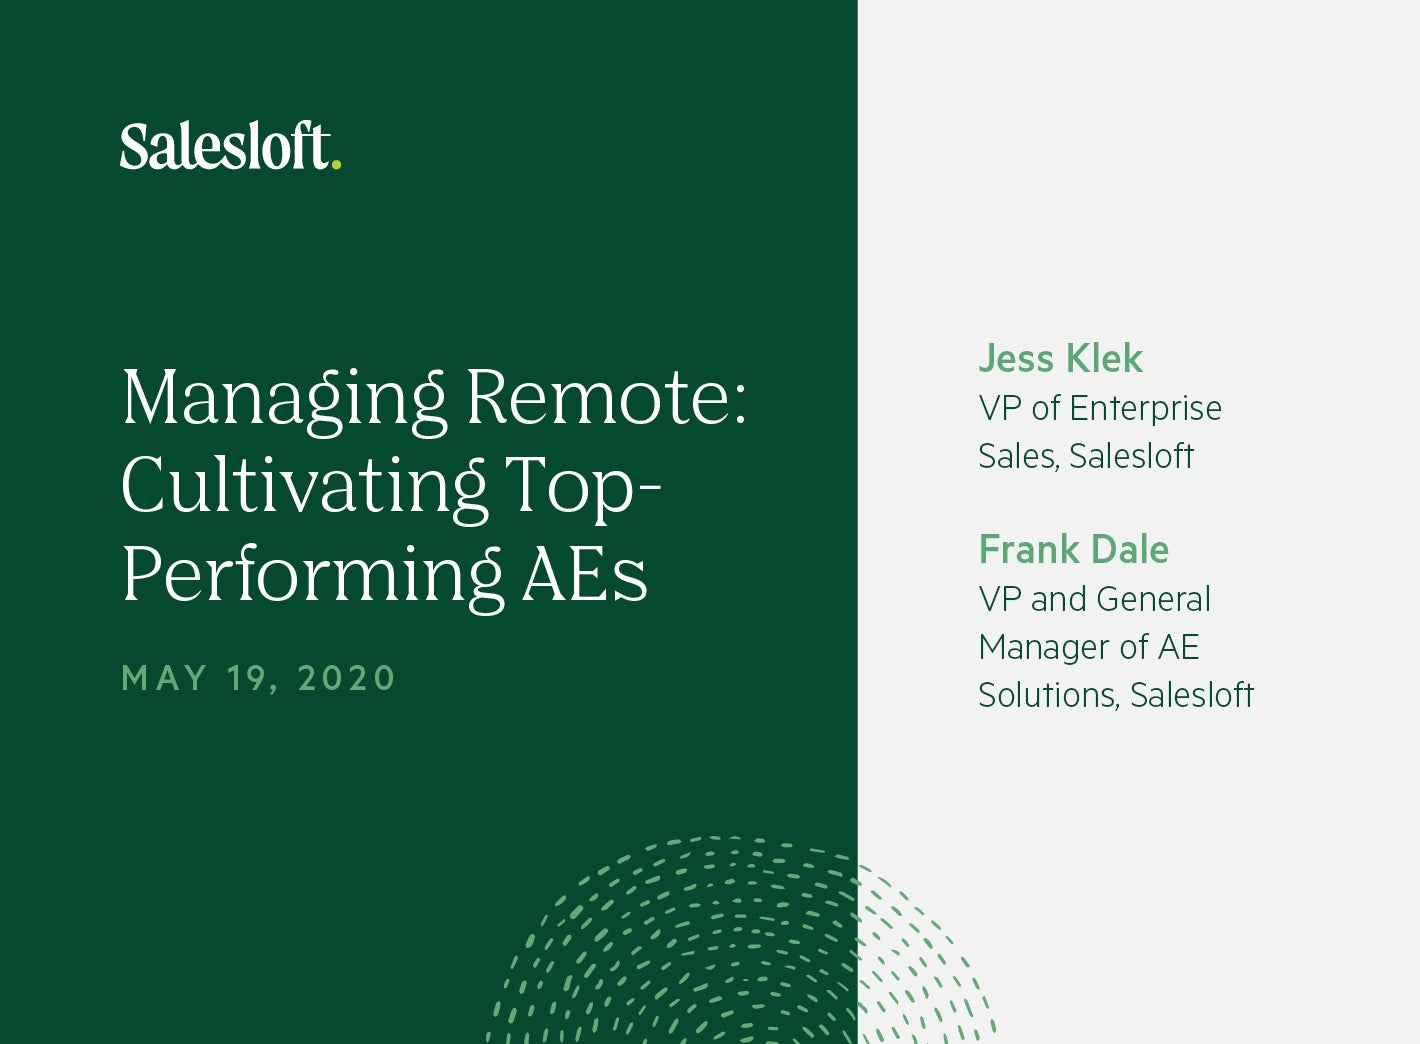 Managing Remote: Cultivating Top-Performing AEs